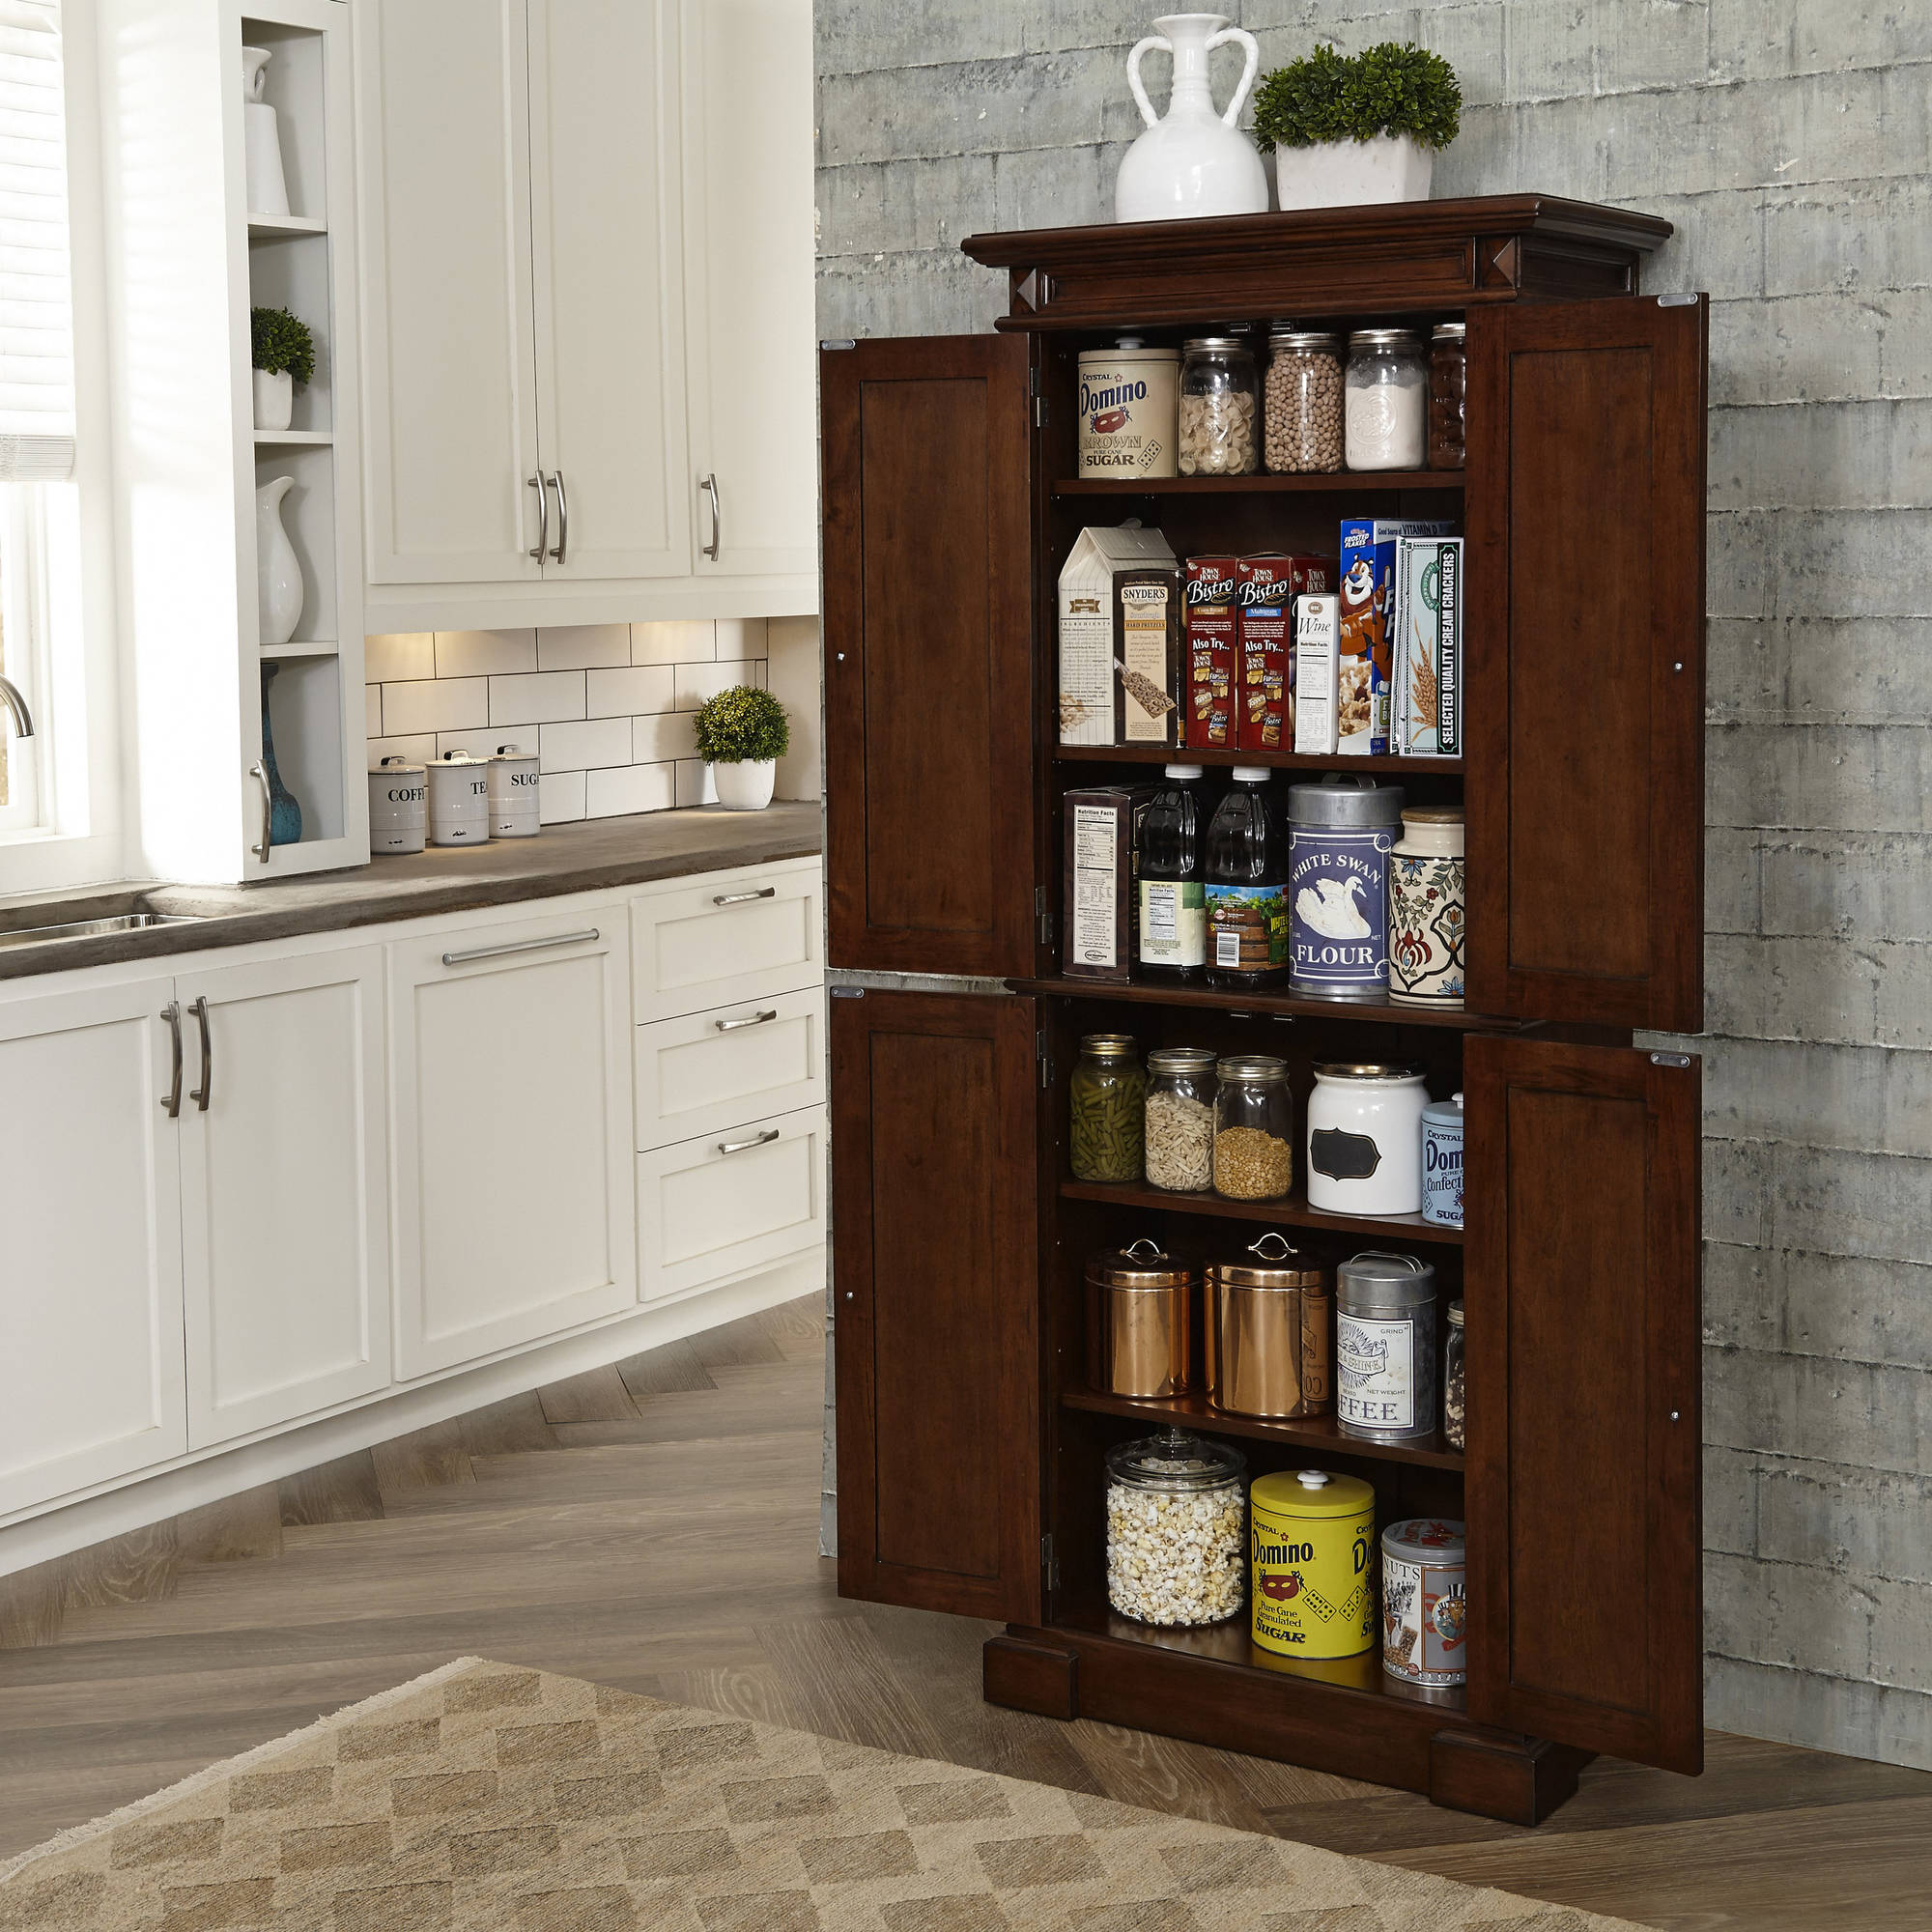 in kitchen storage cabinets full plans cabinet counter of large organizers canisters built pantry size